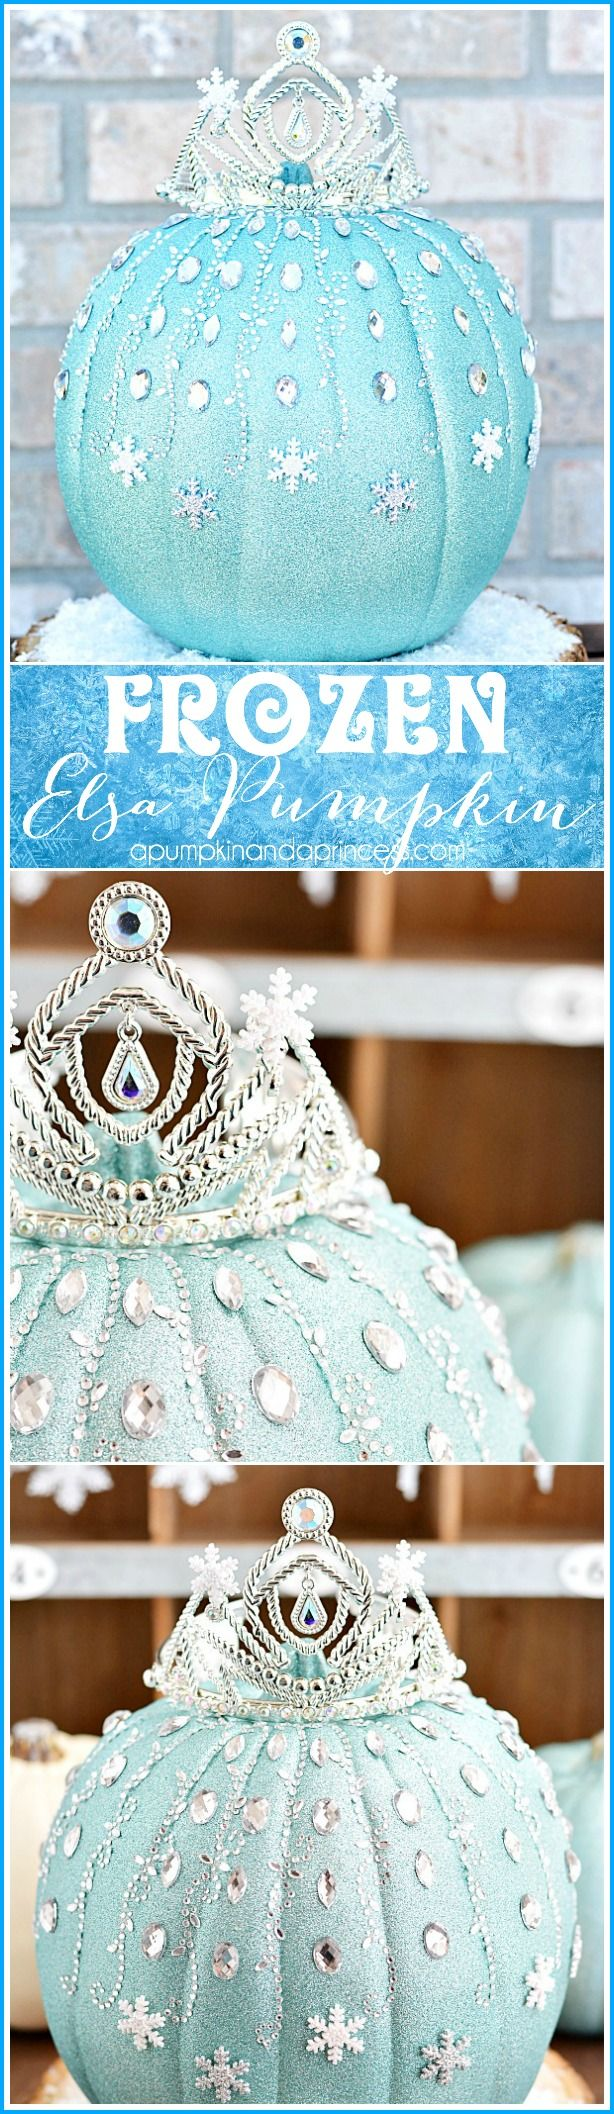 Best 25+ Elsa pumpkin ideas on Pinterest | Frozen pumpkin ...